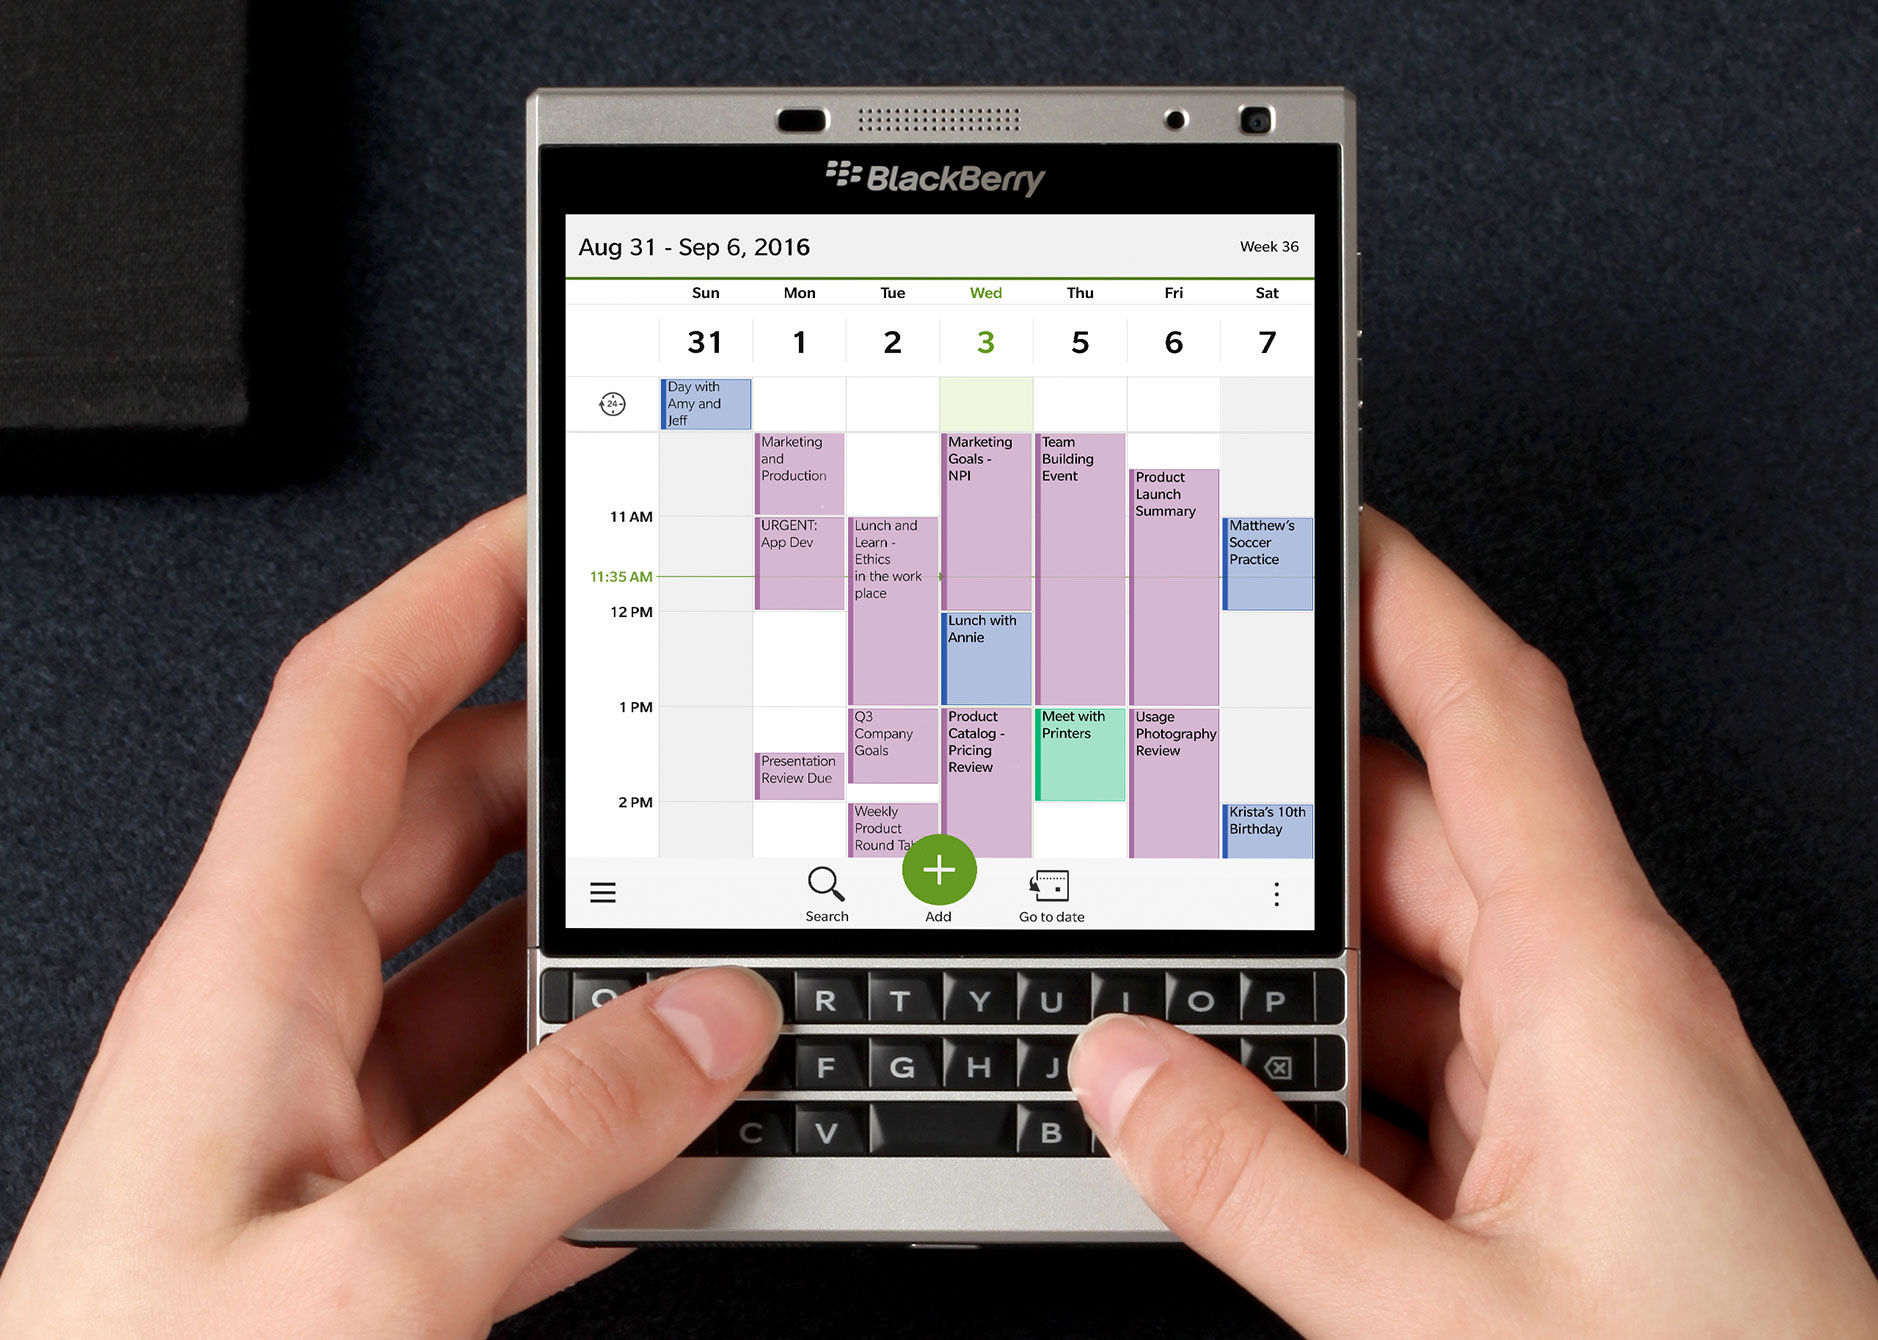 BlackBerry Passport Silver Edition Dallas Rp3 5 Juta